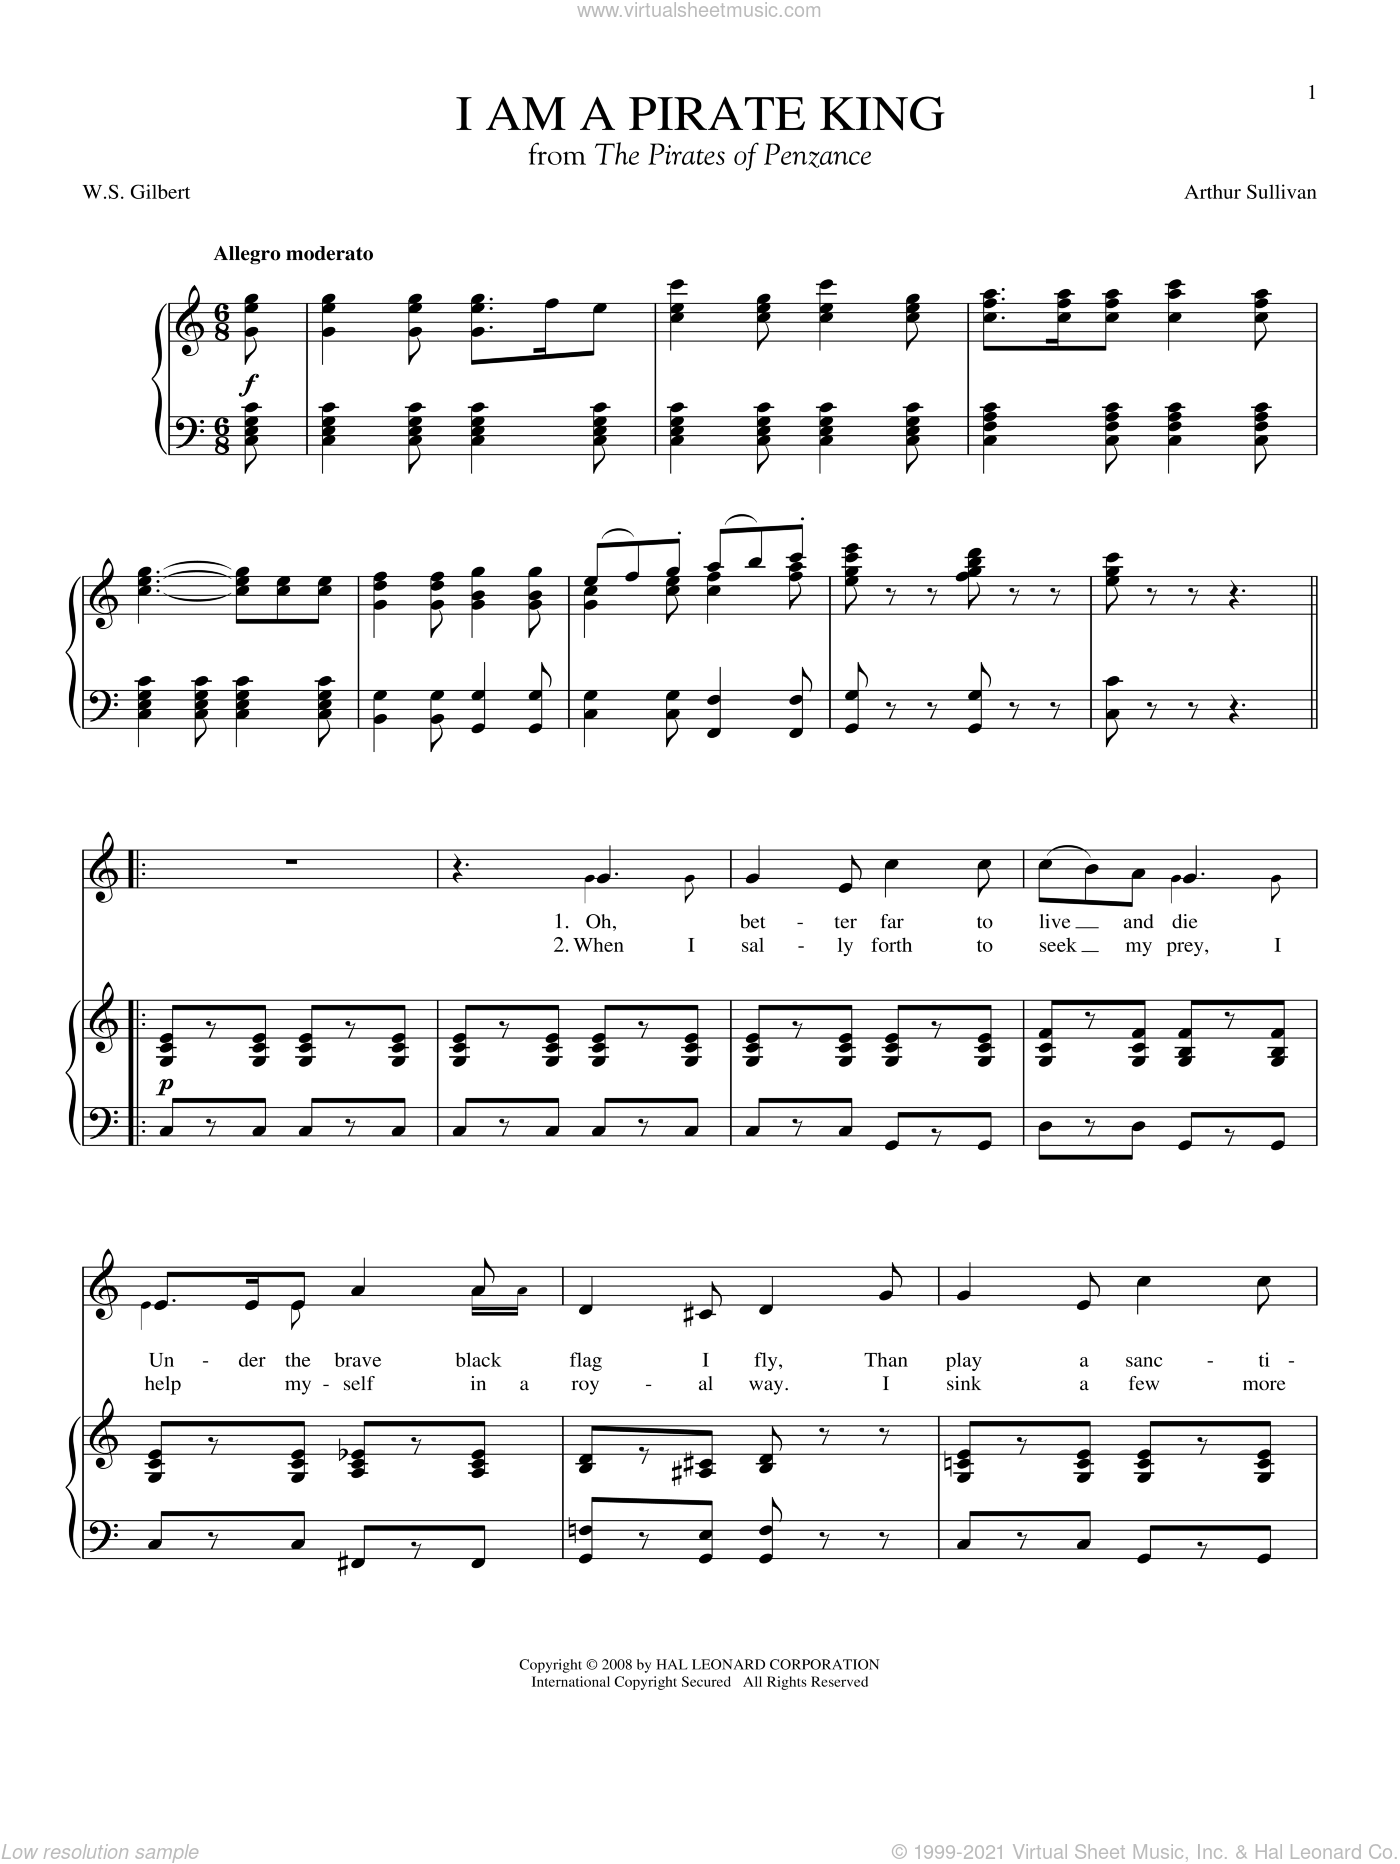 I Am A Pirate King sheet music for voice and piano by Joan Frey Boytim, Arthur Sullivan and William S. Gilbert, intermediate skill level